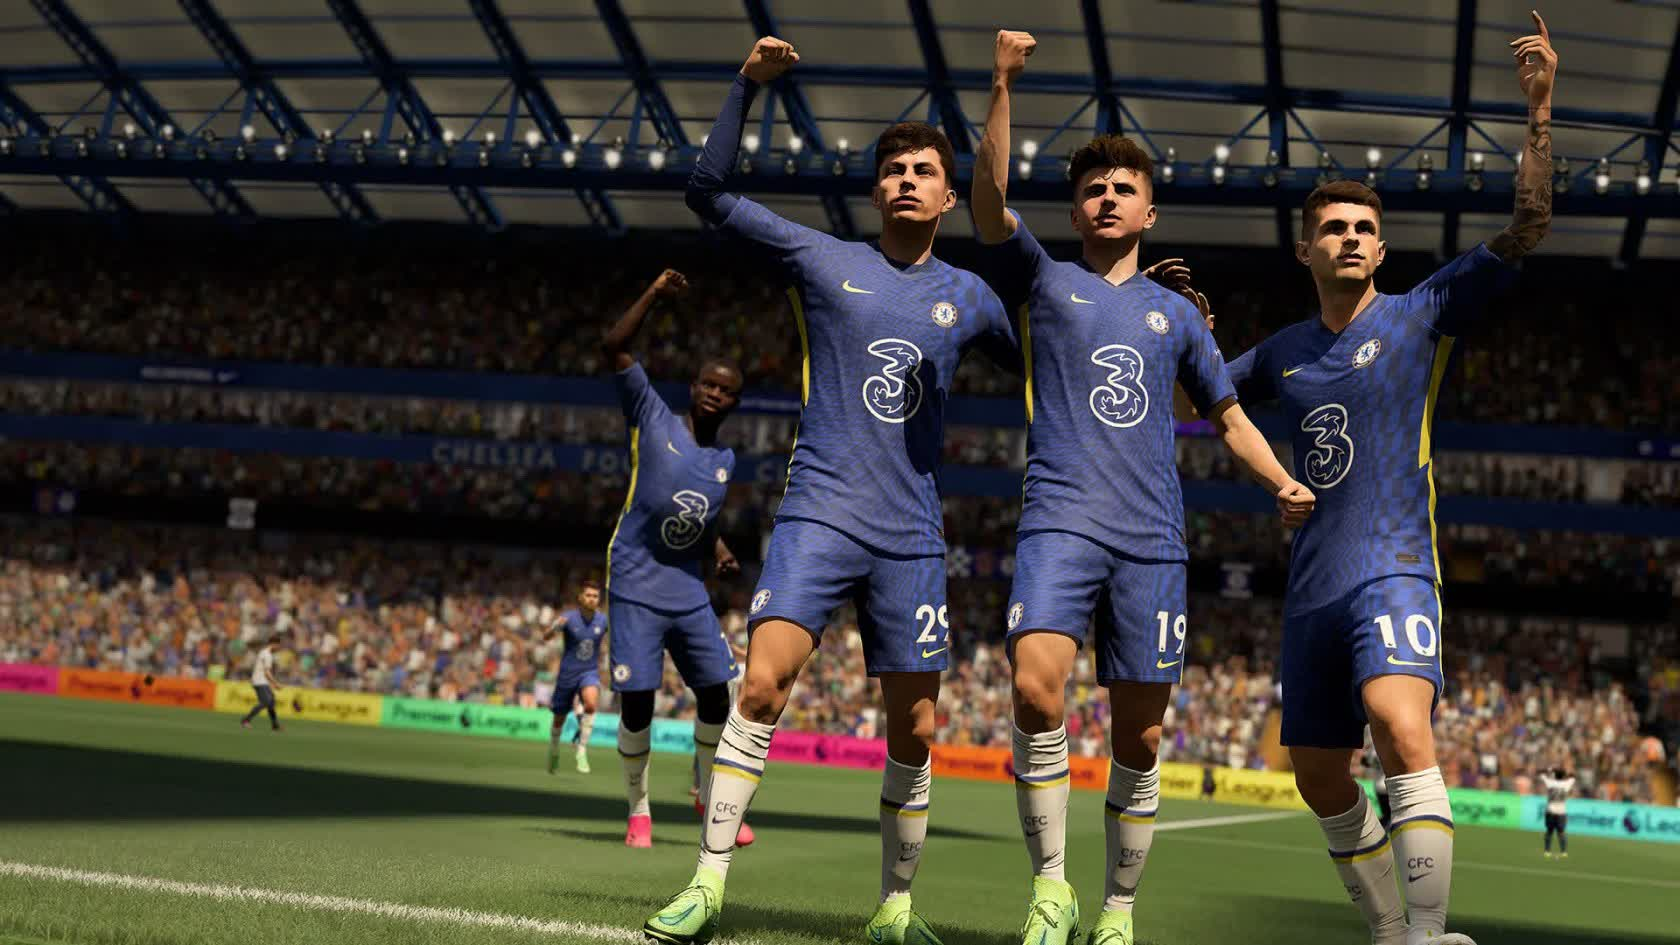 Possible financial dispute between EA and FIFA lies behind video game name change